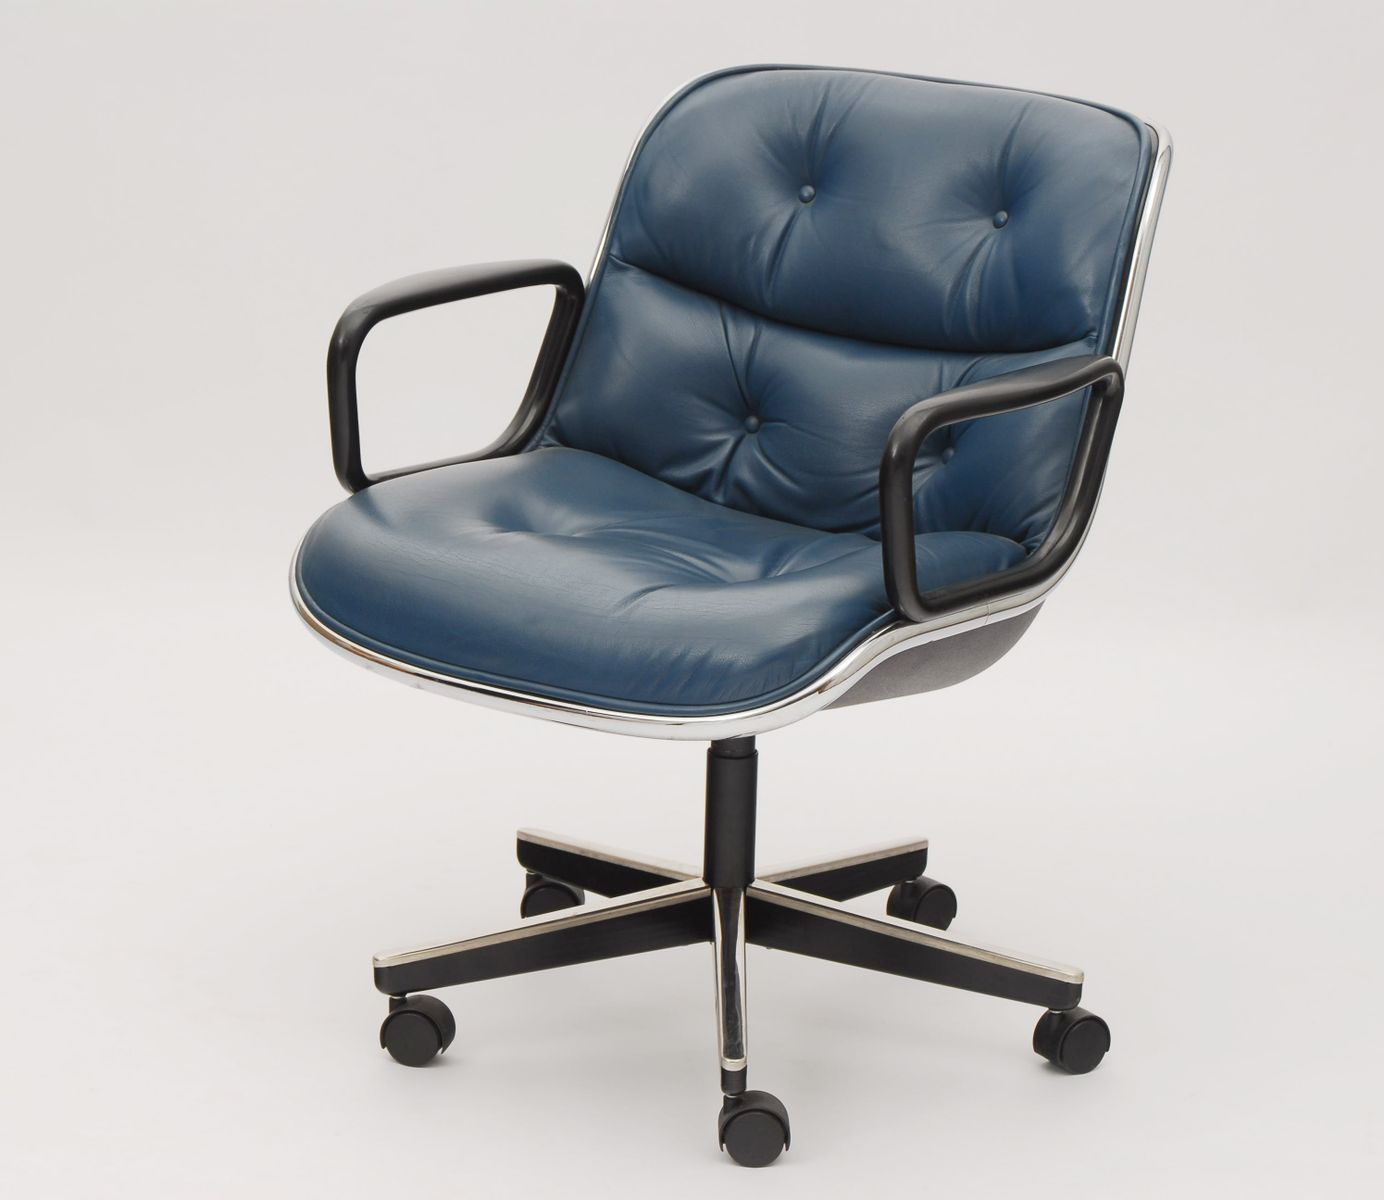 office chair by charles pollock for knoll international